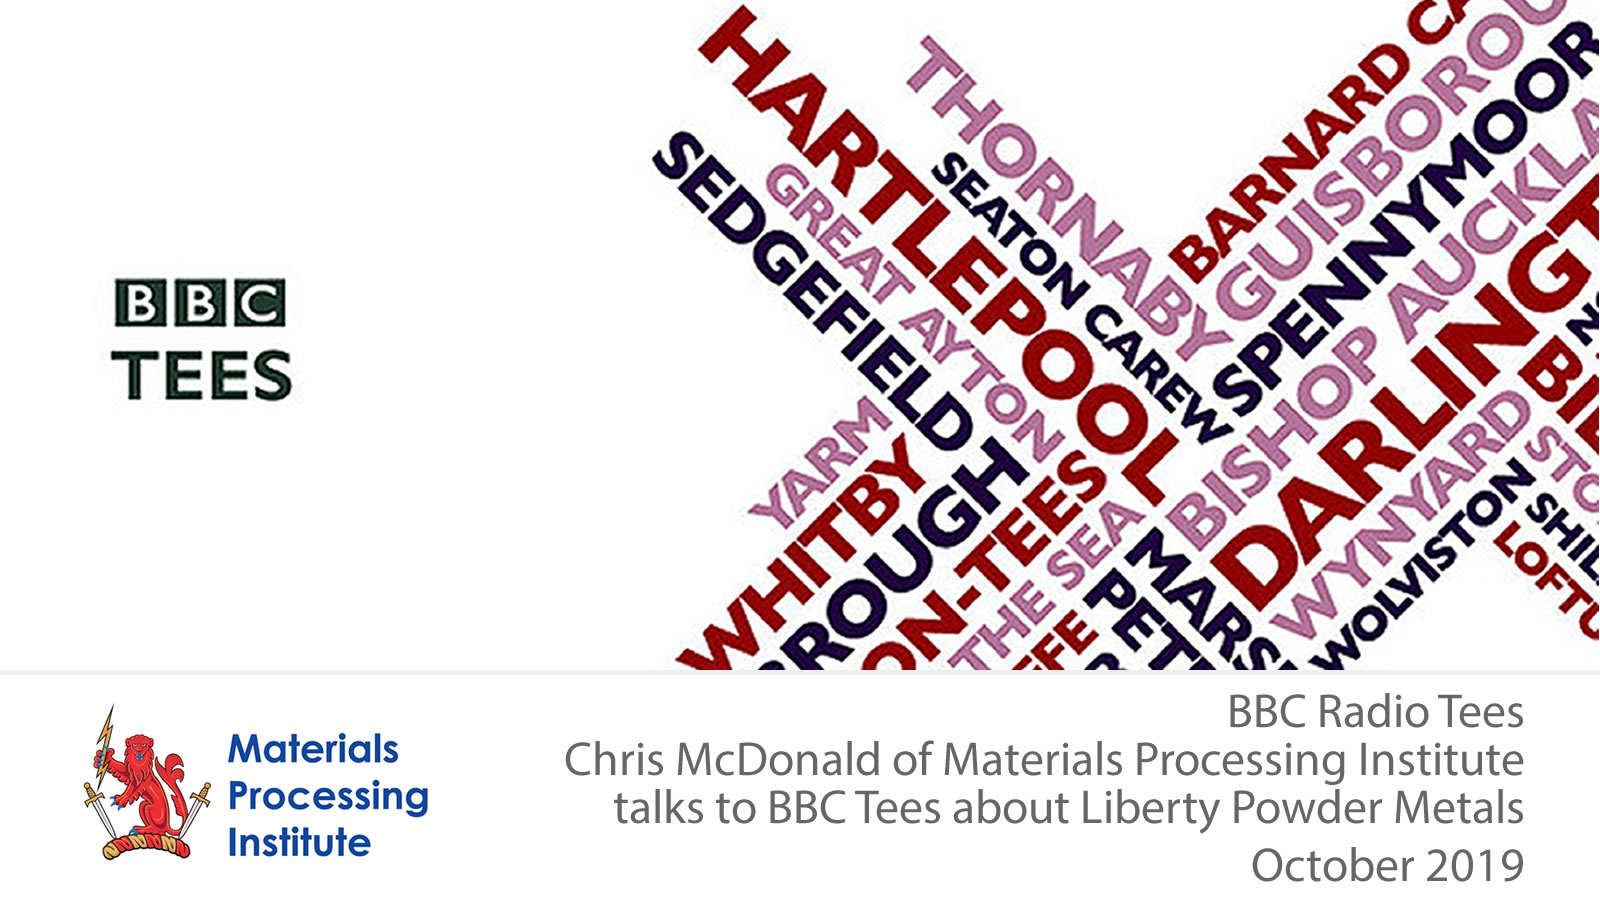 Chris McDonald of Materials Processing Institute talks to BBC Tees about Liberty Powder Metals - October 2019